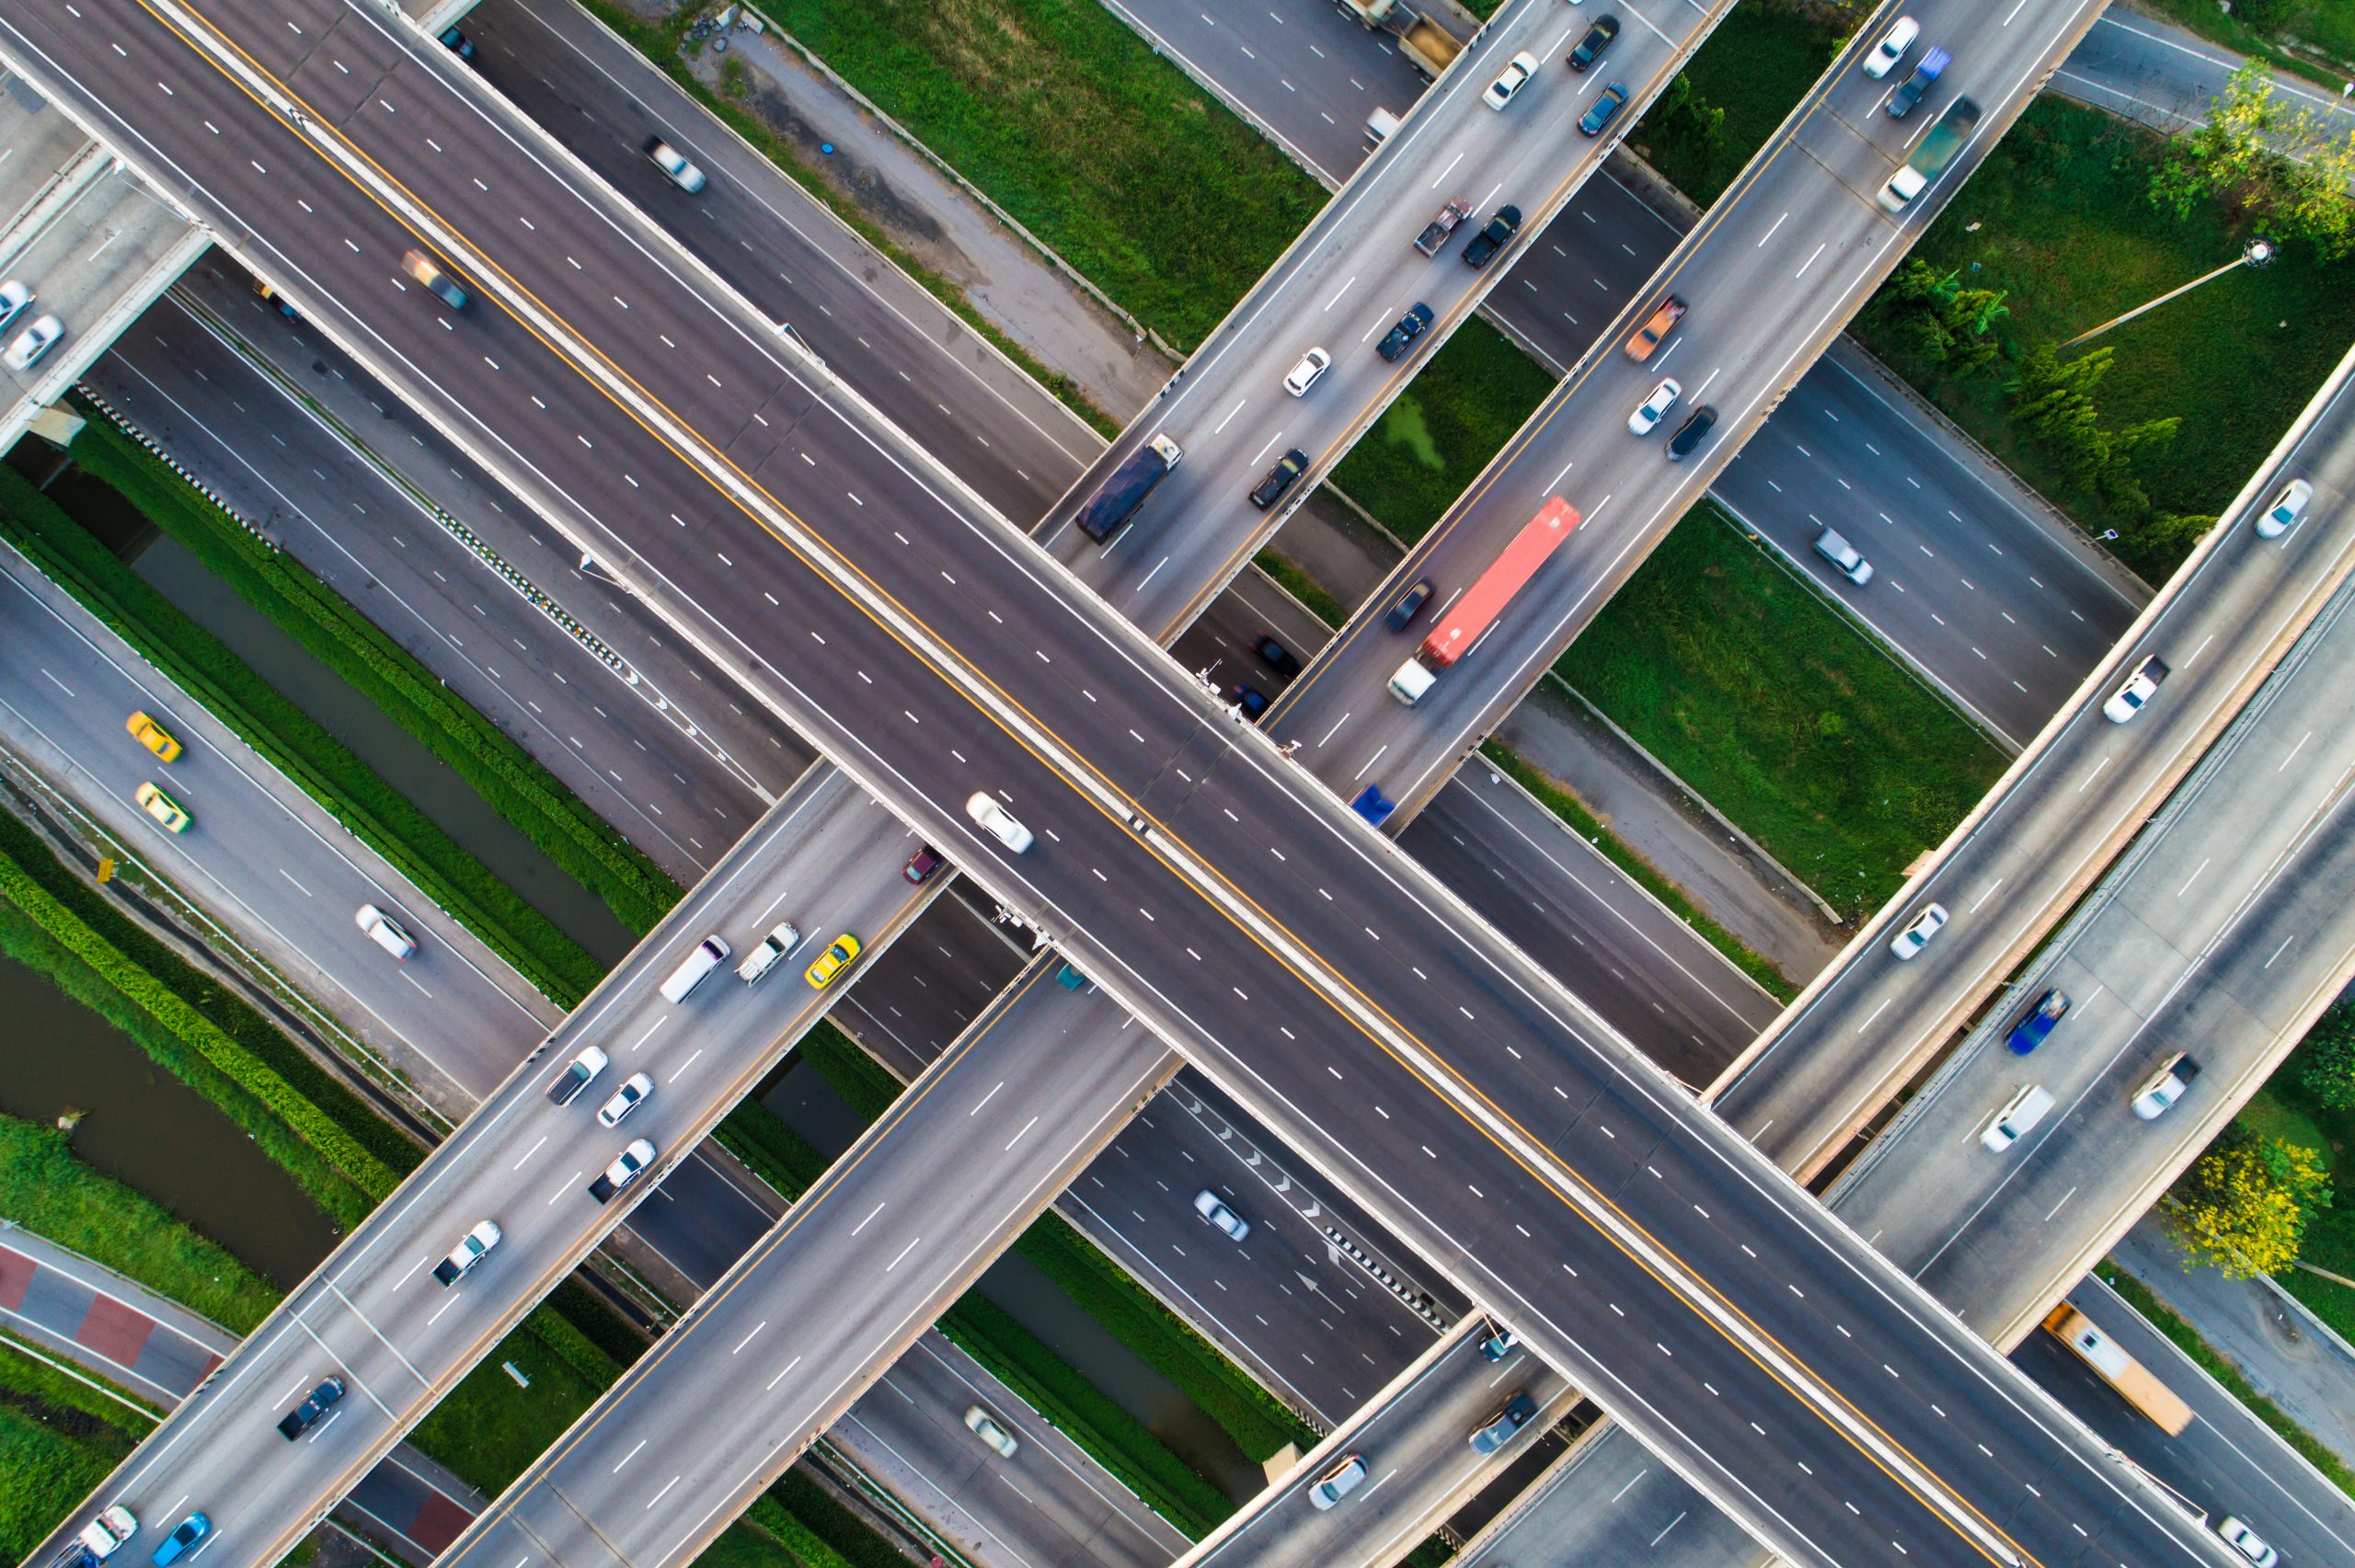 aerial view of roads